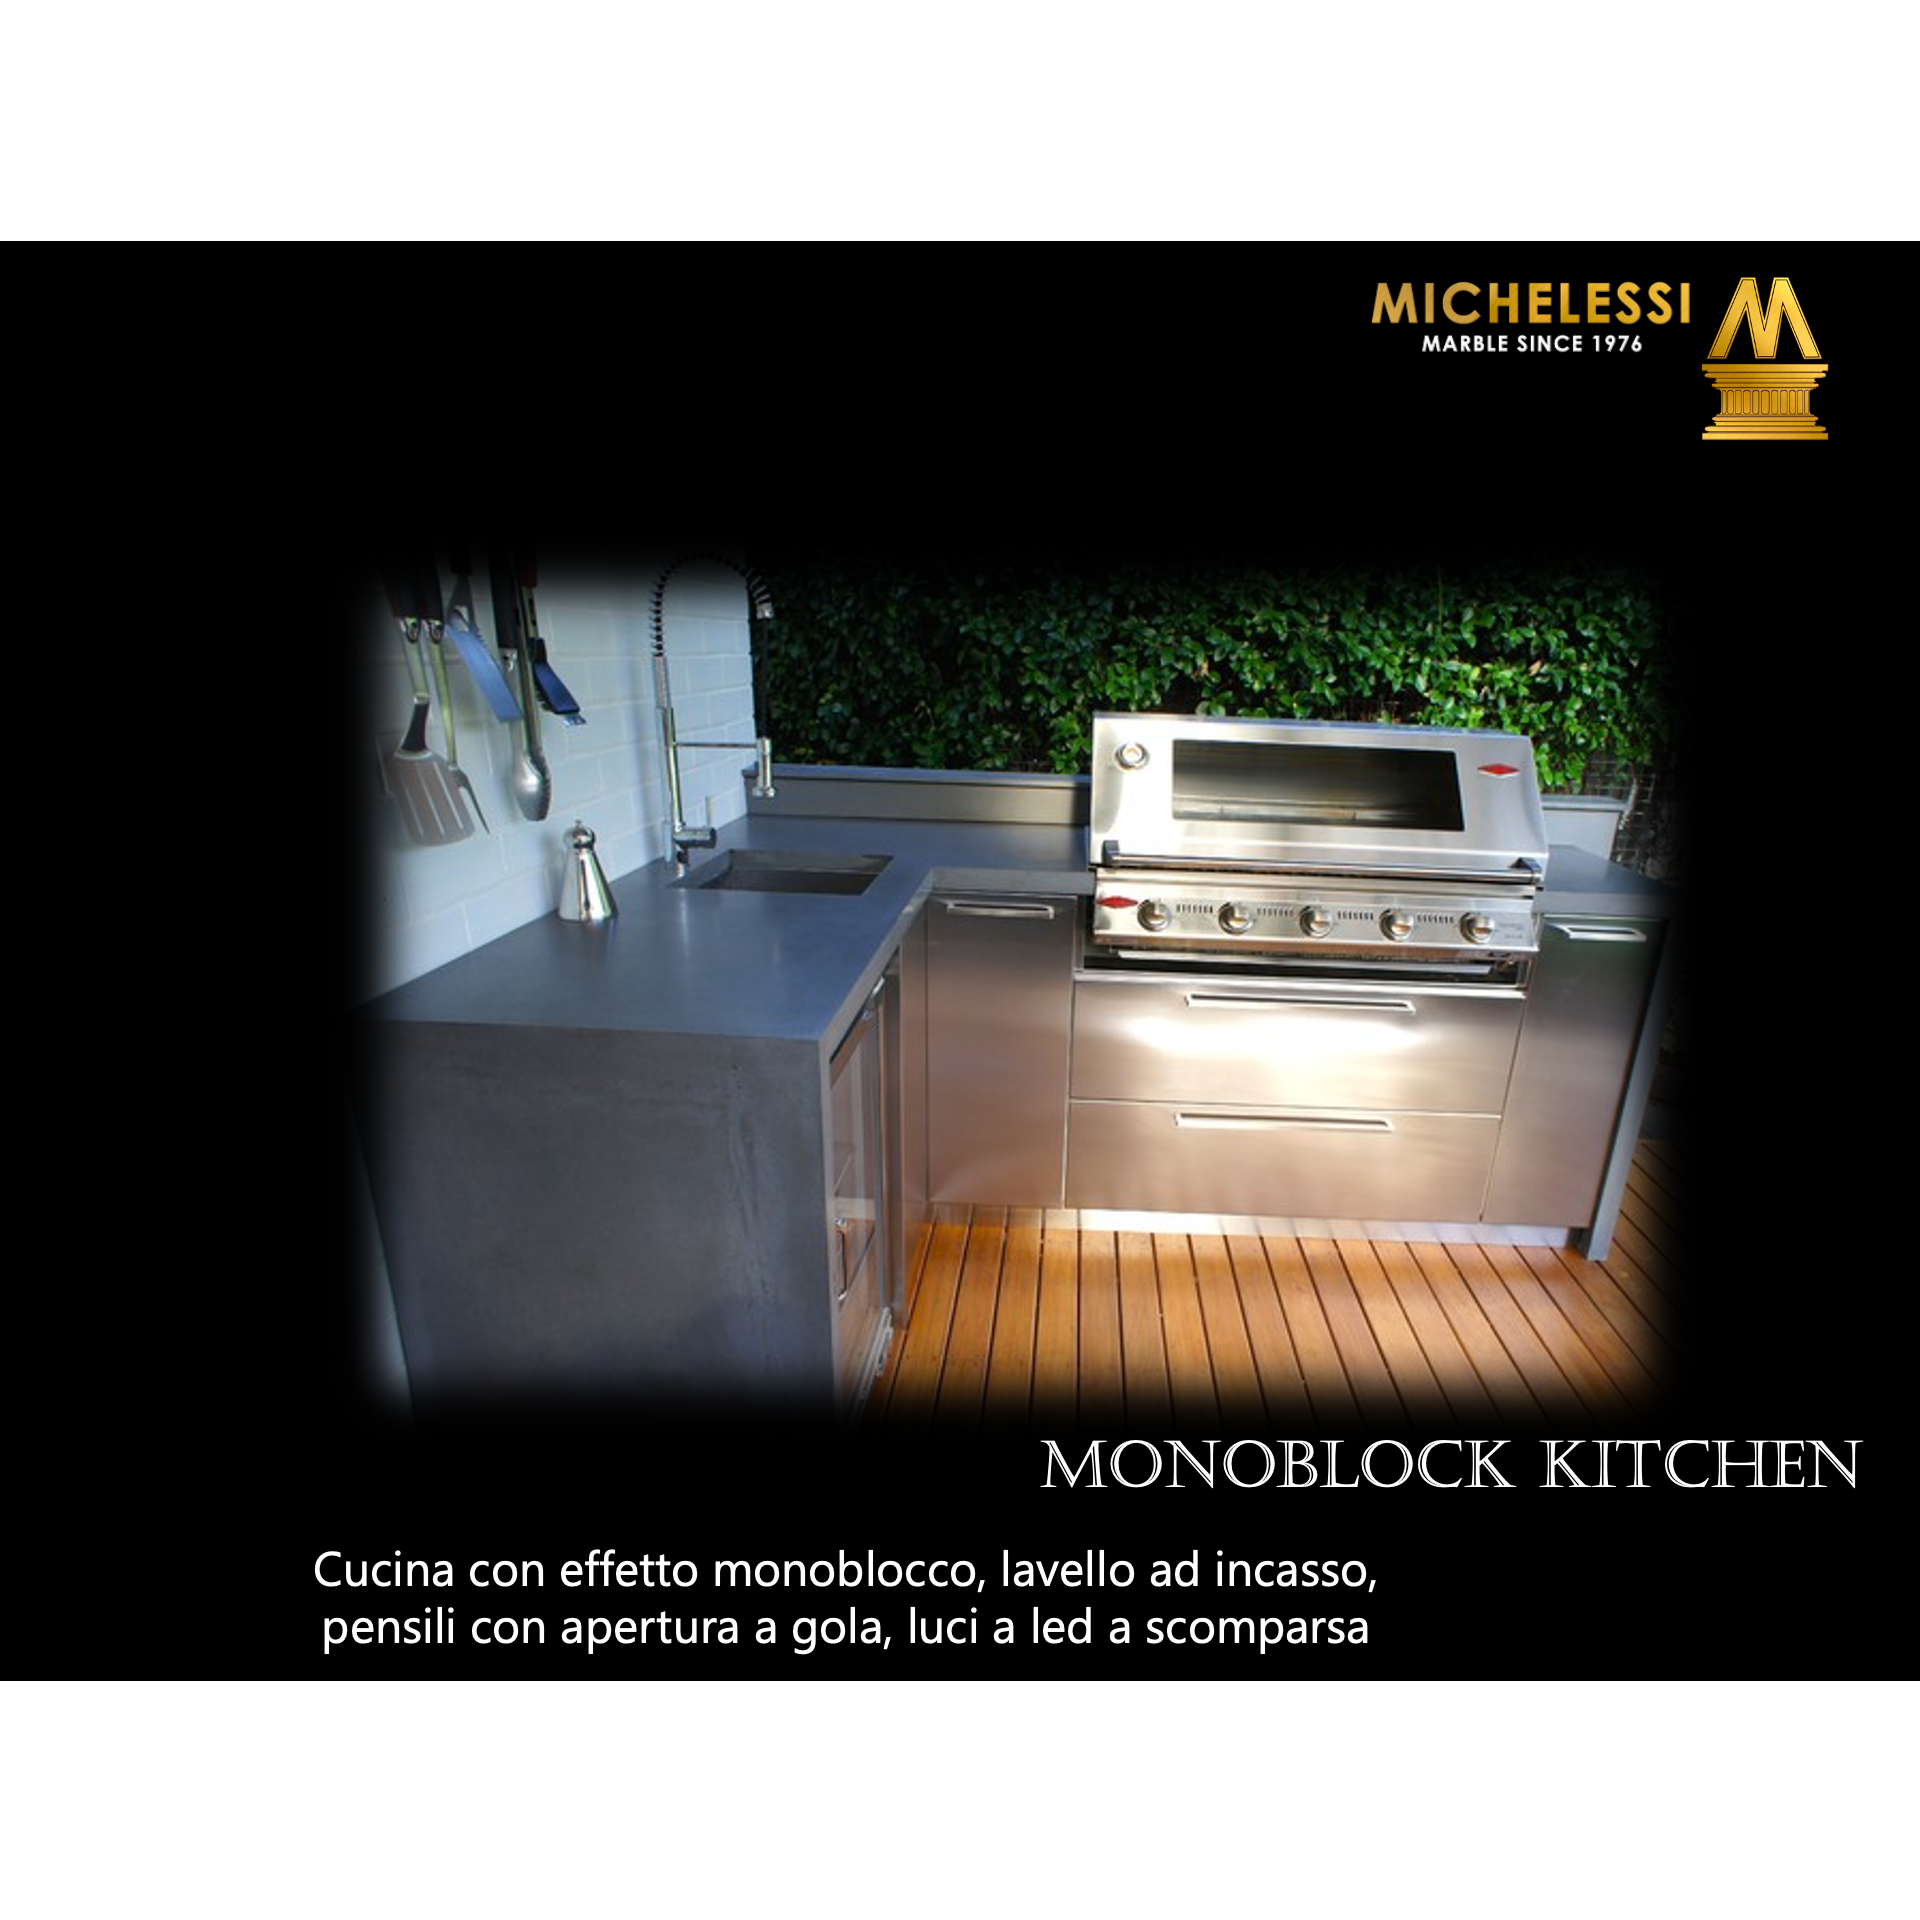 MONOBLOCK KITCHEN